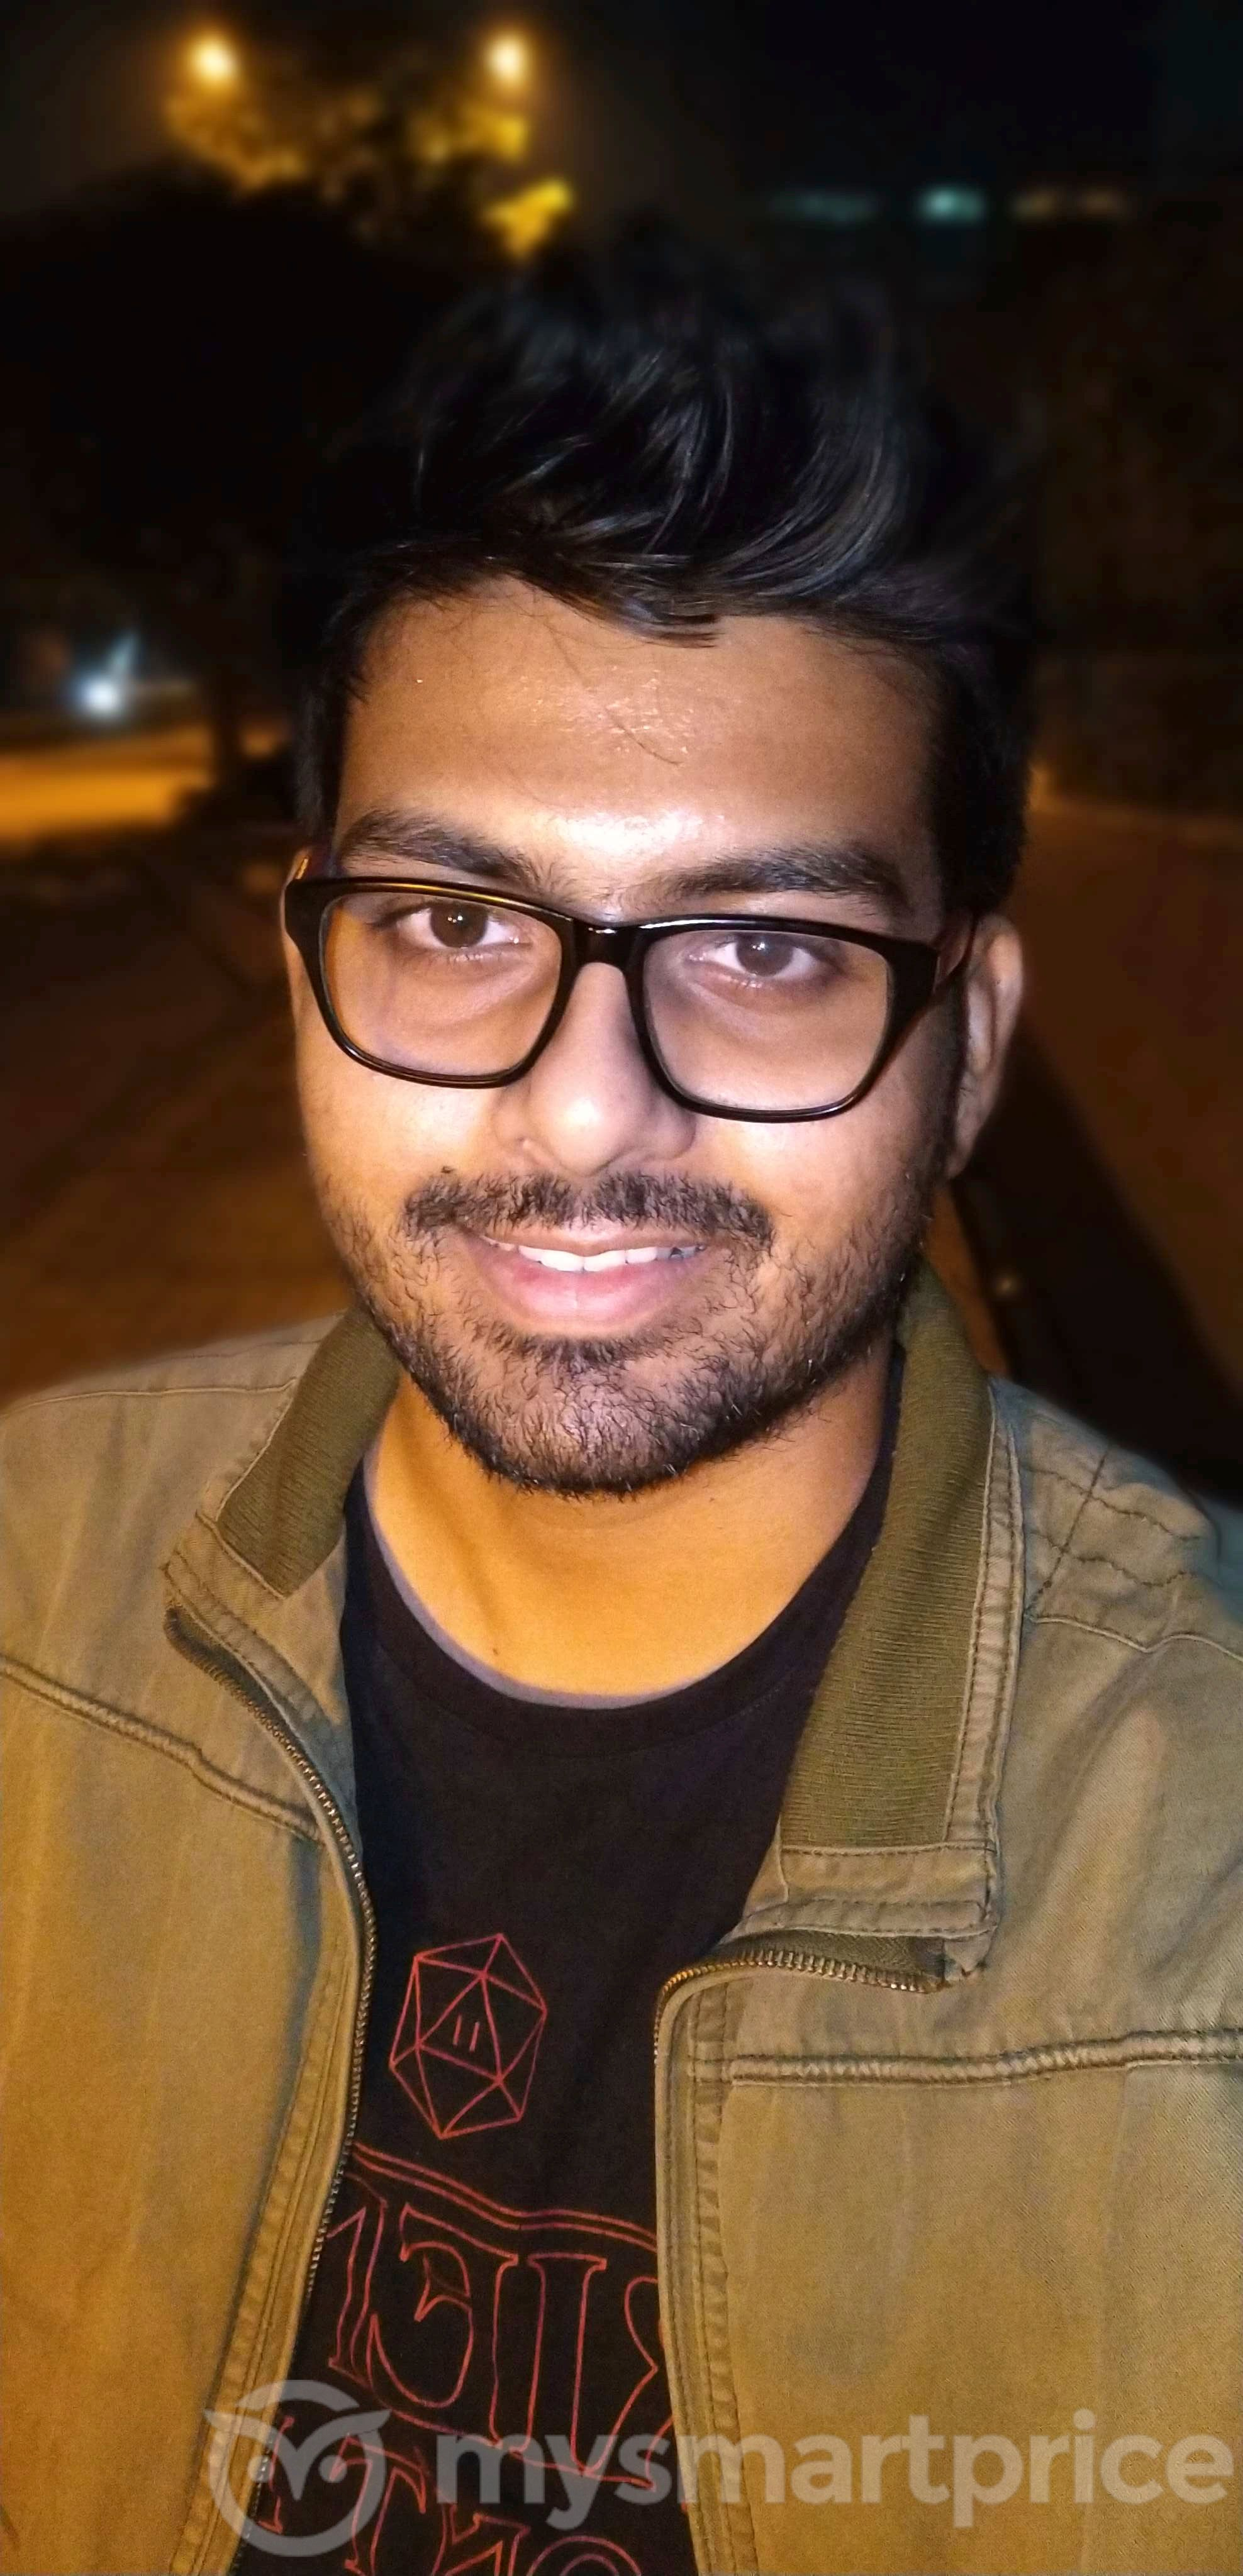 Motorola Moto One Power Review: Front-facing Camera Sample 08 (Bokeh Mode With Flash)